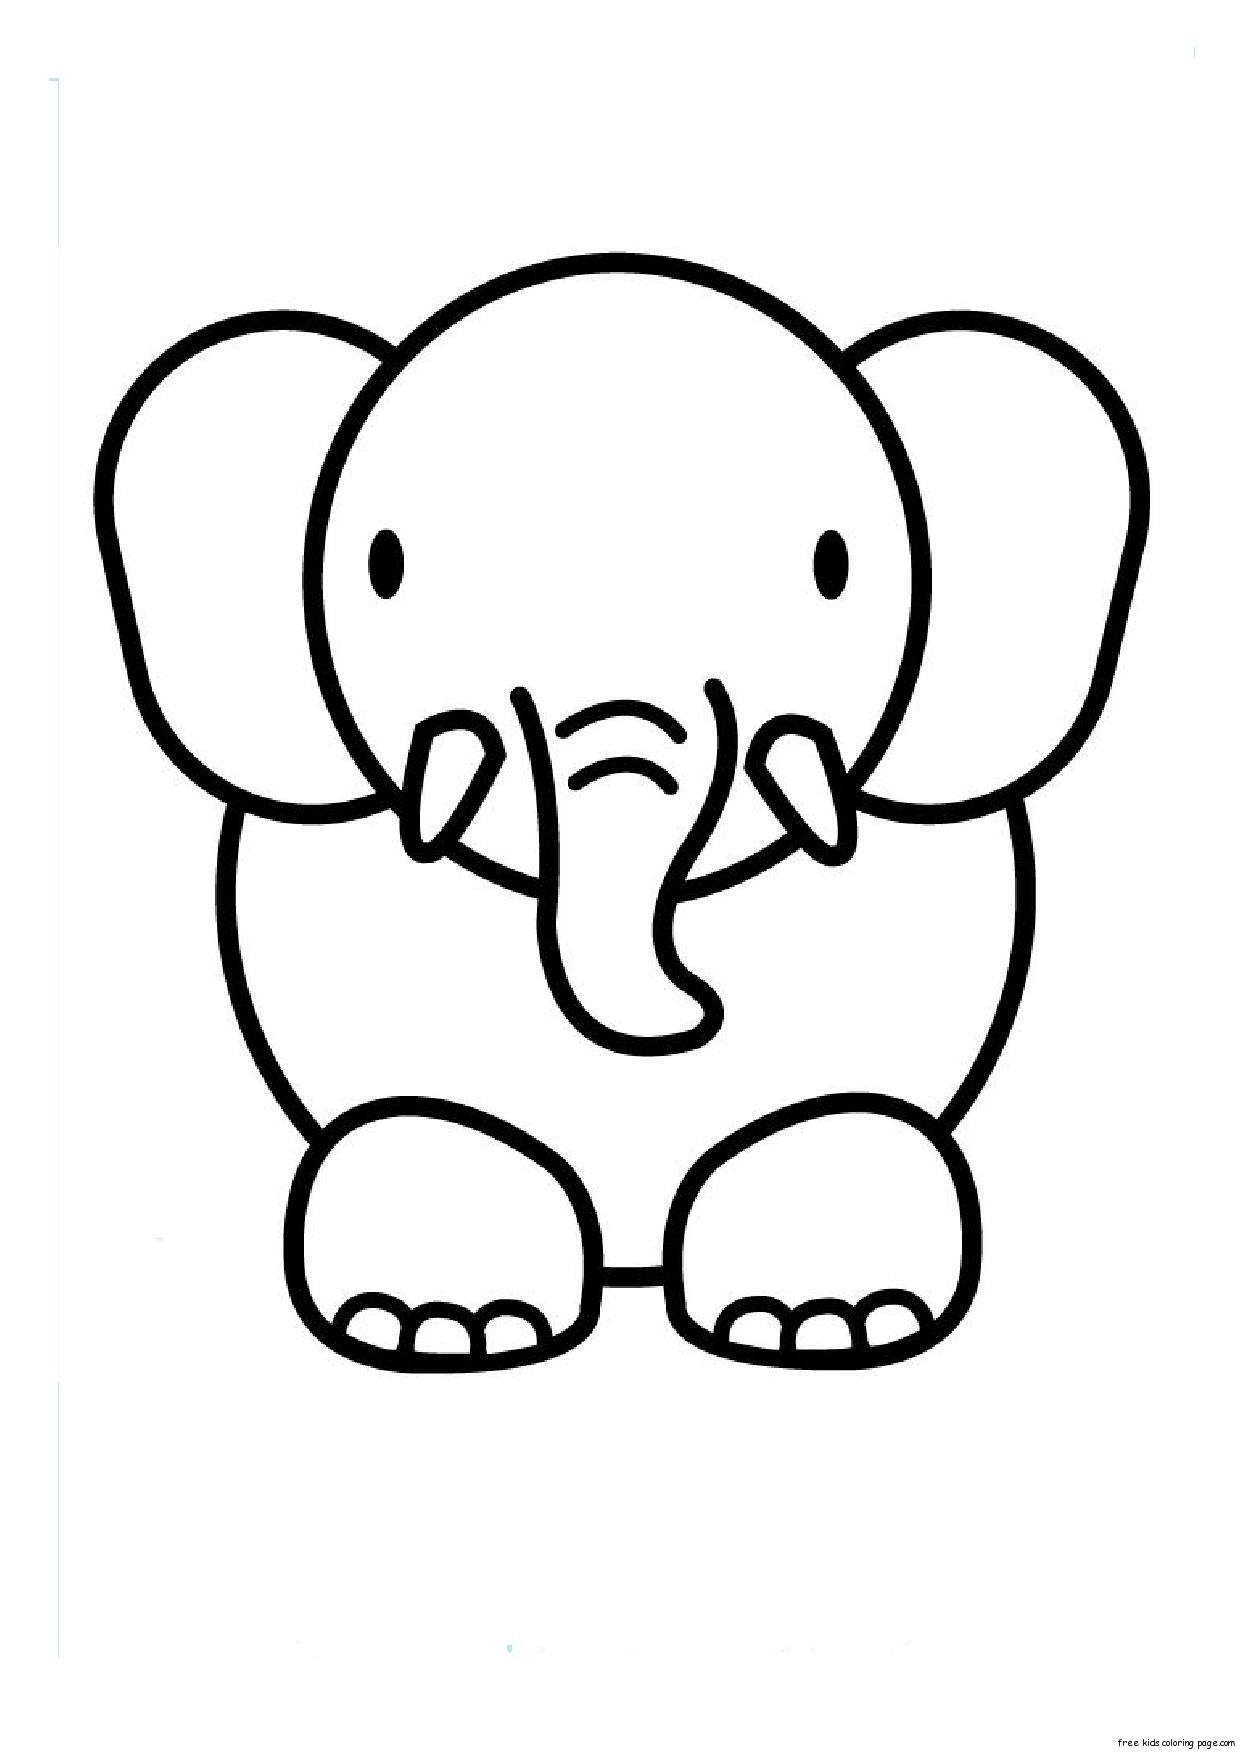 Print out animal elephant coloring pages for kidsfree for Free animal coloring pages kids